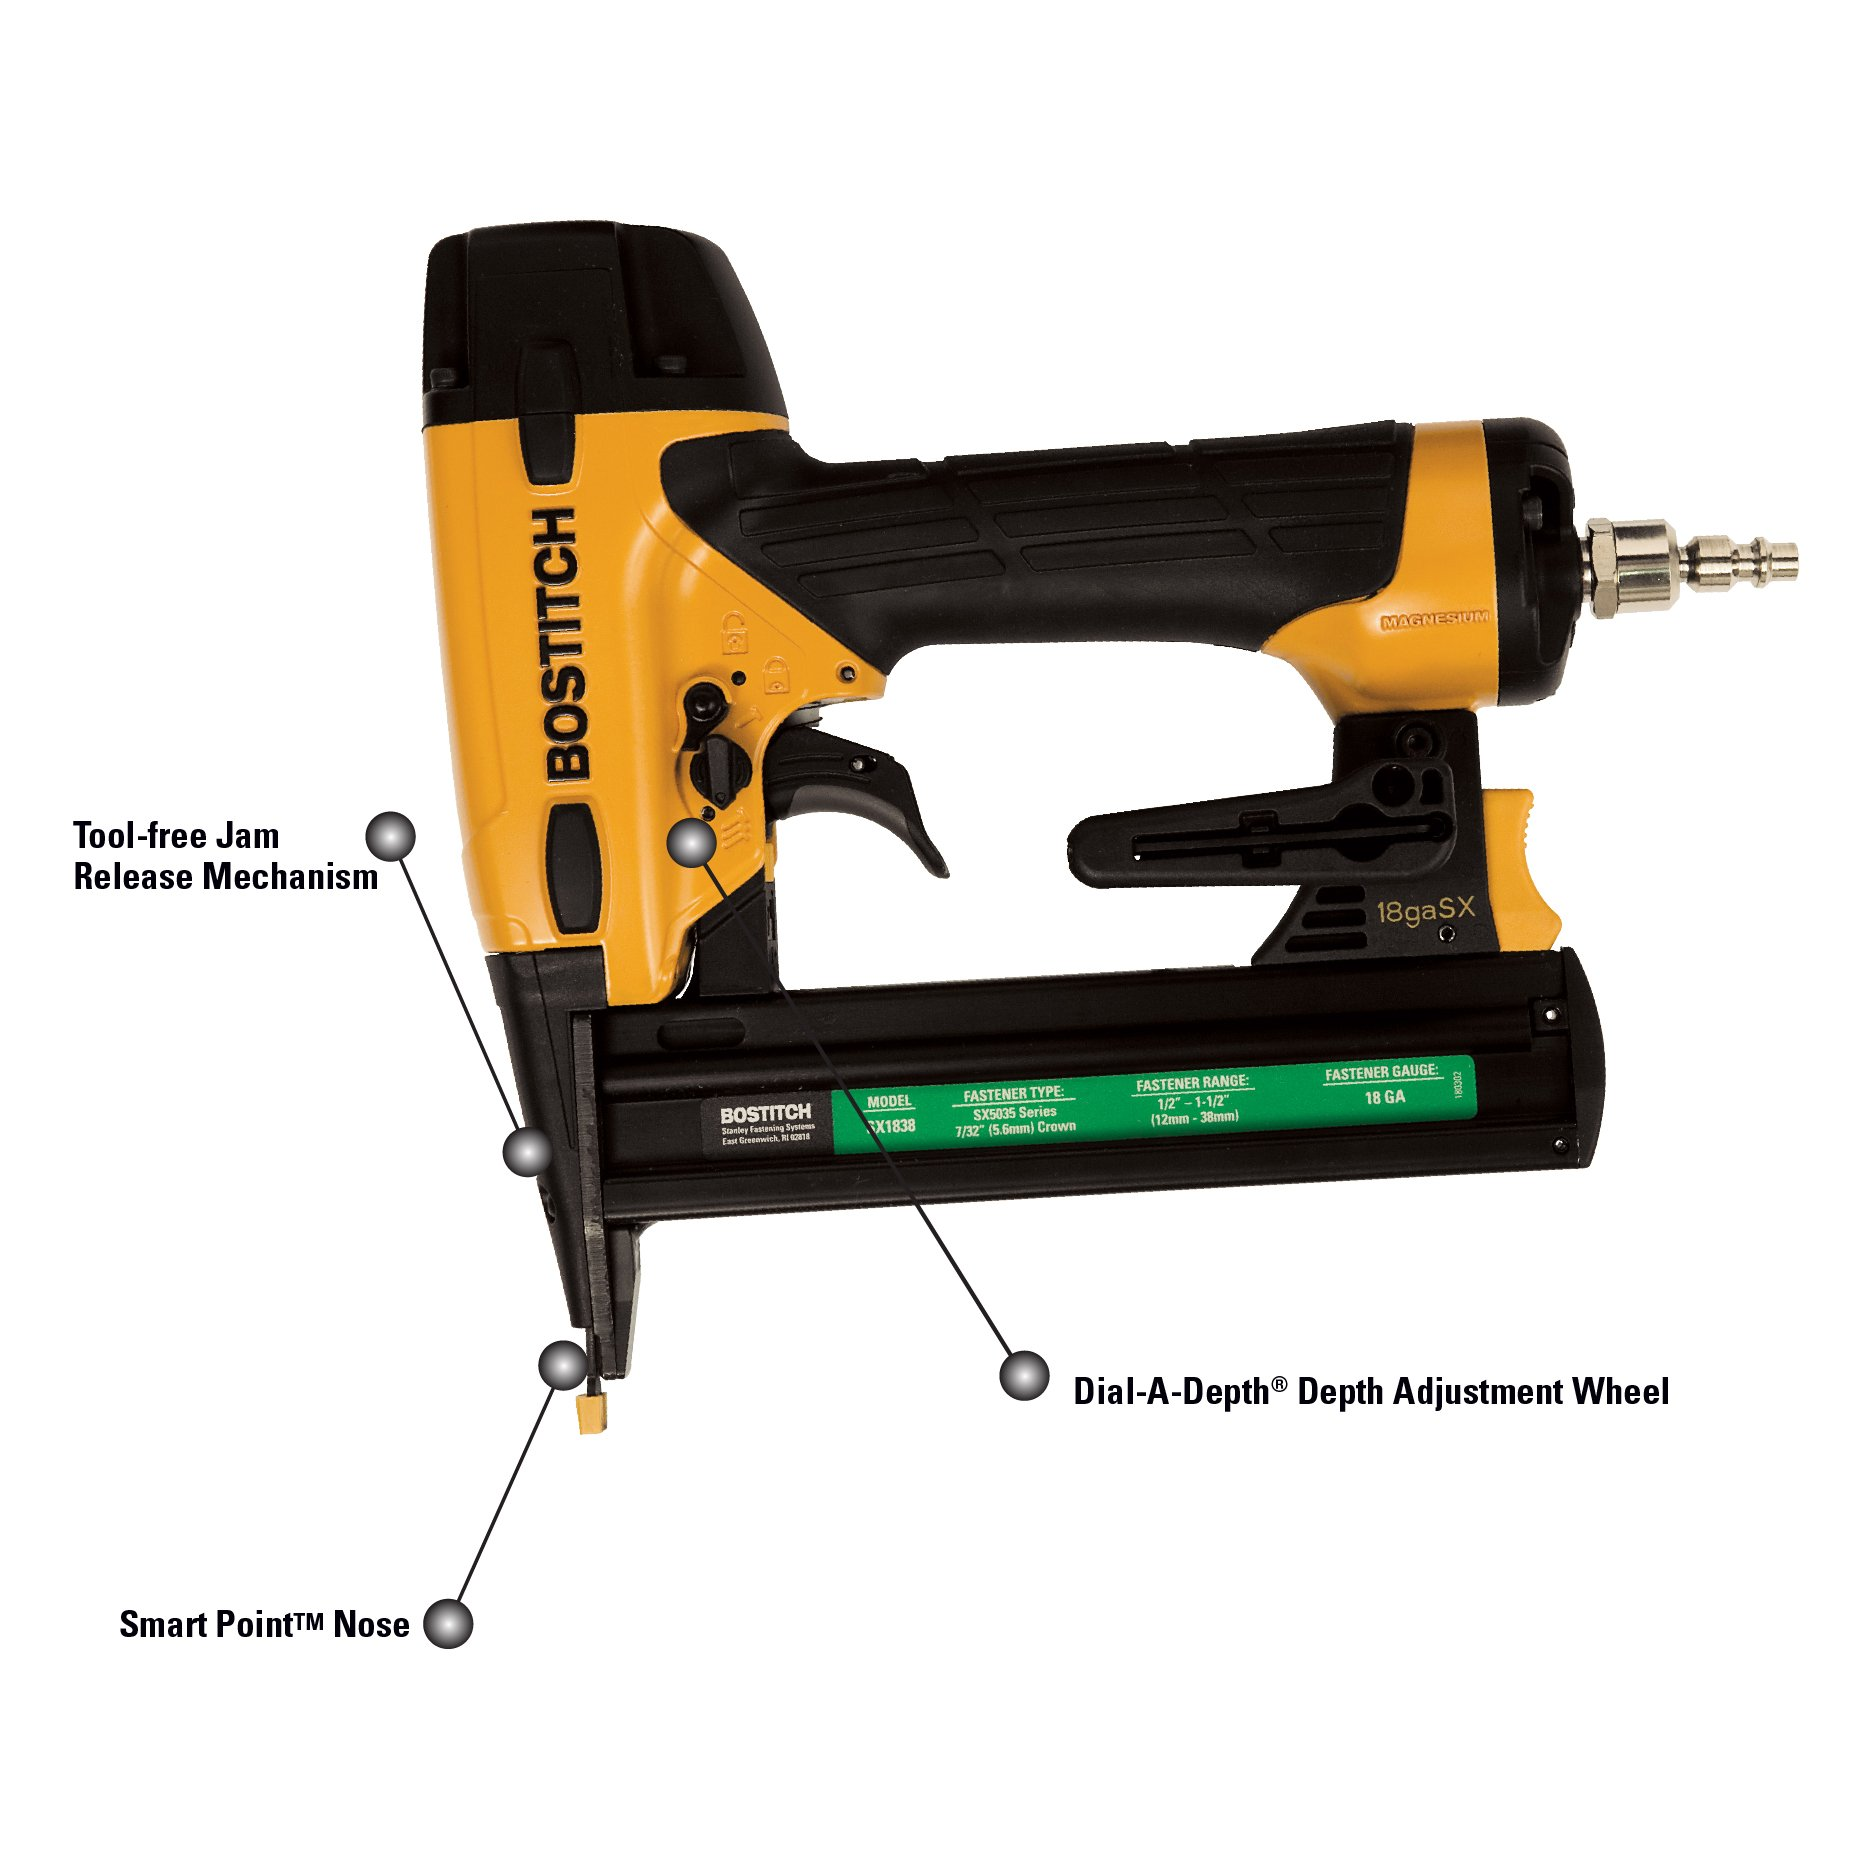 BOSTITCH SX1838K 18-Gauge Narrow-Crown Stapler by BOSTITCH